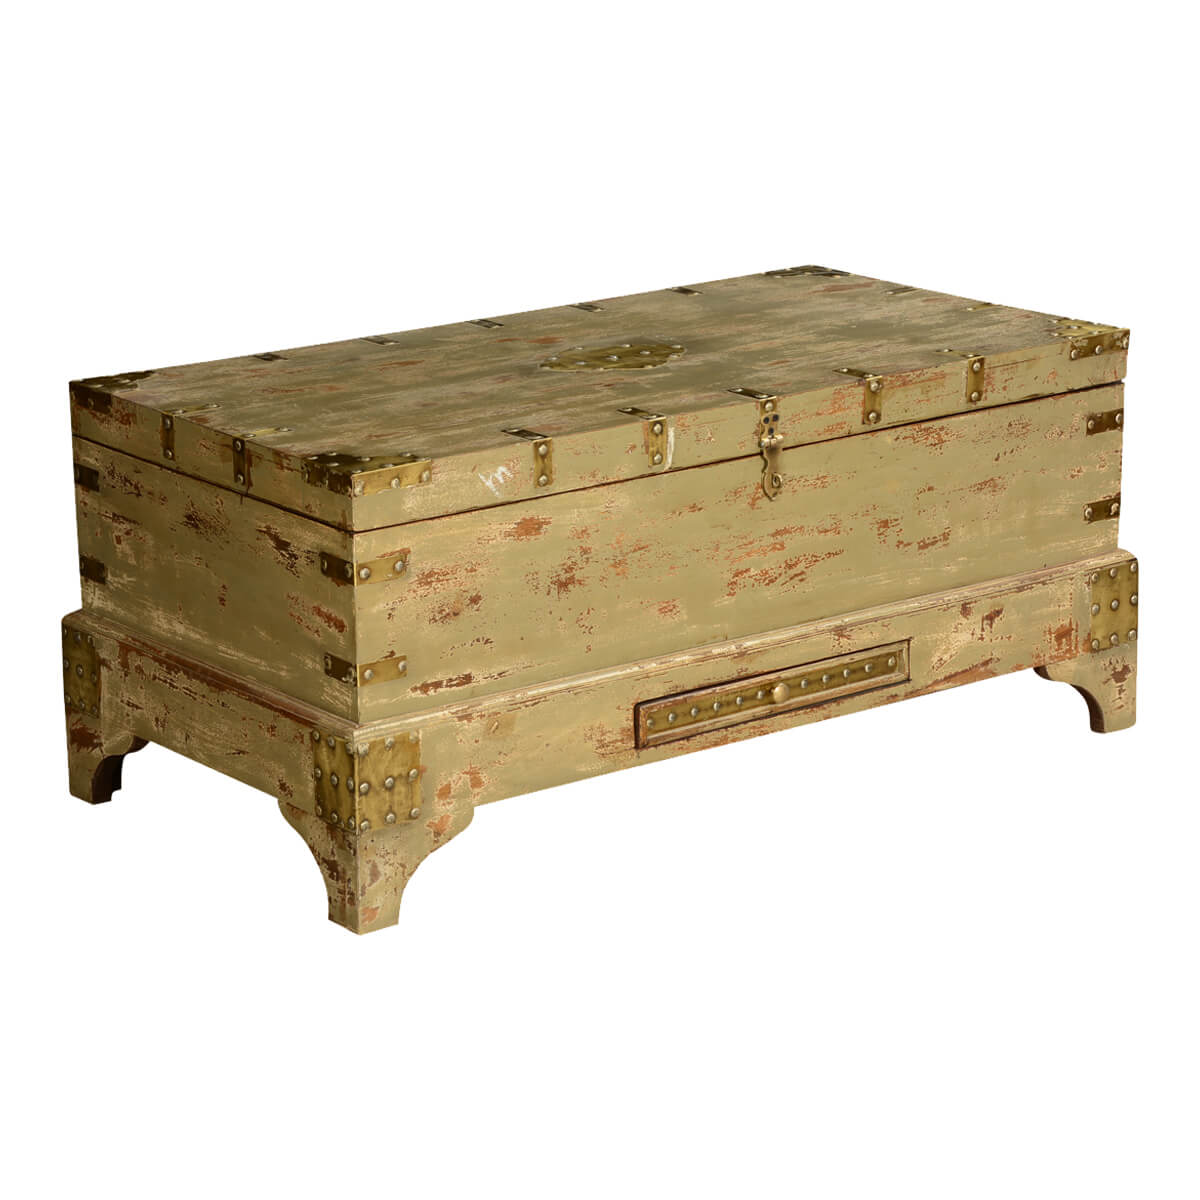 Gothic Treasures Mango Wood Rustic Standing Coffee Table Chest